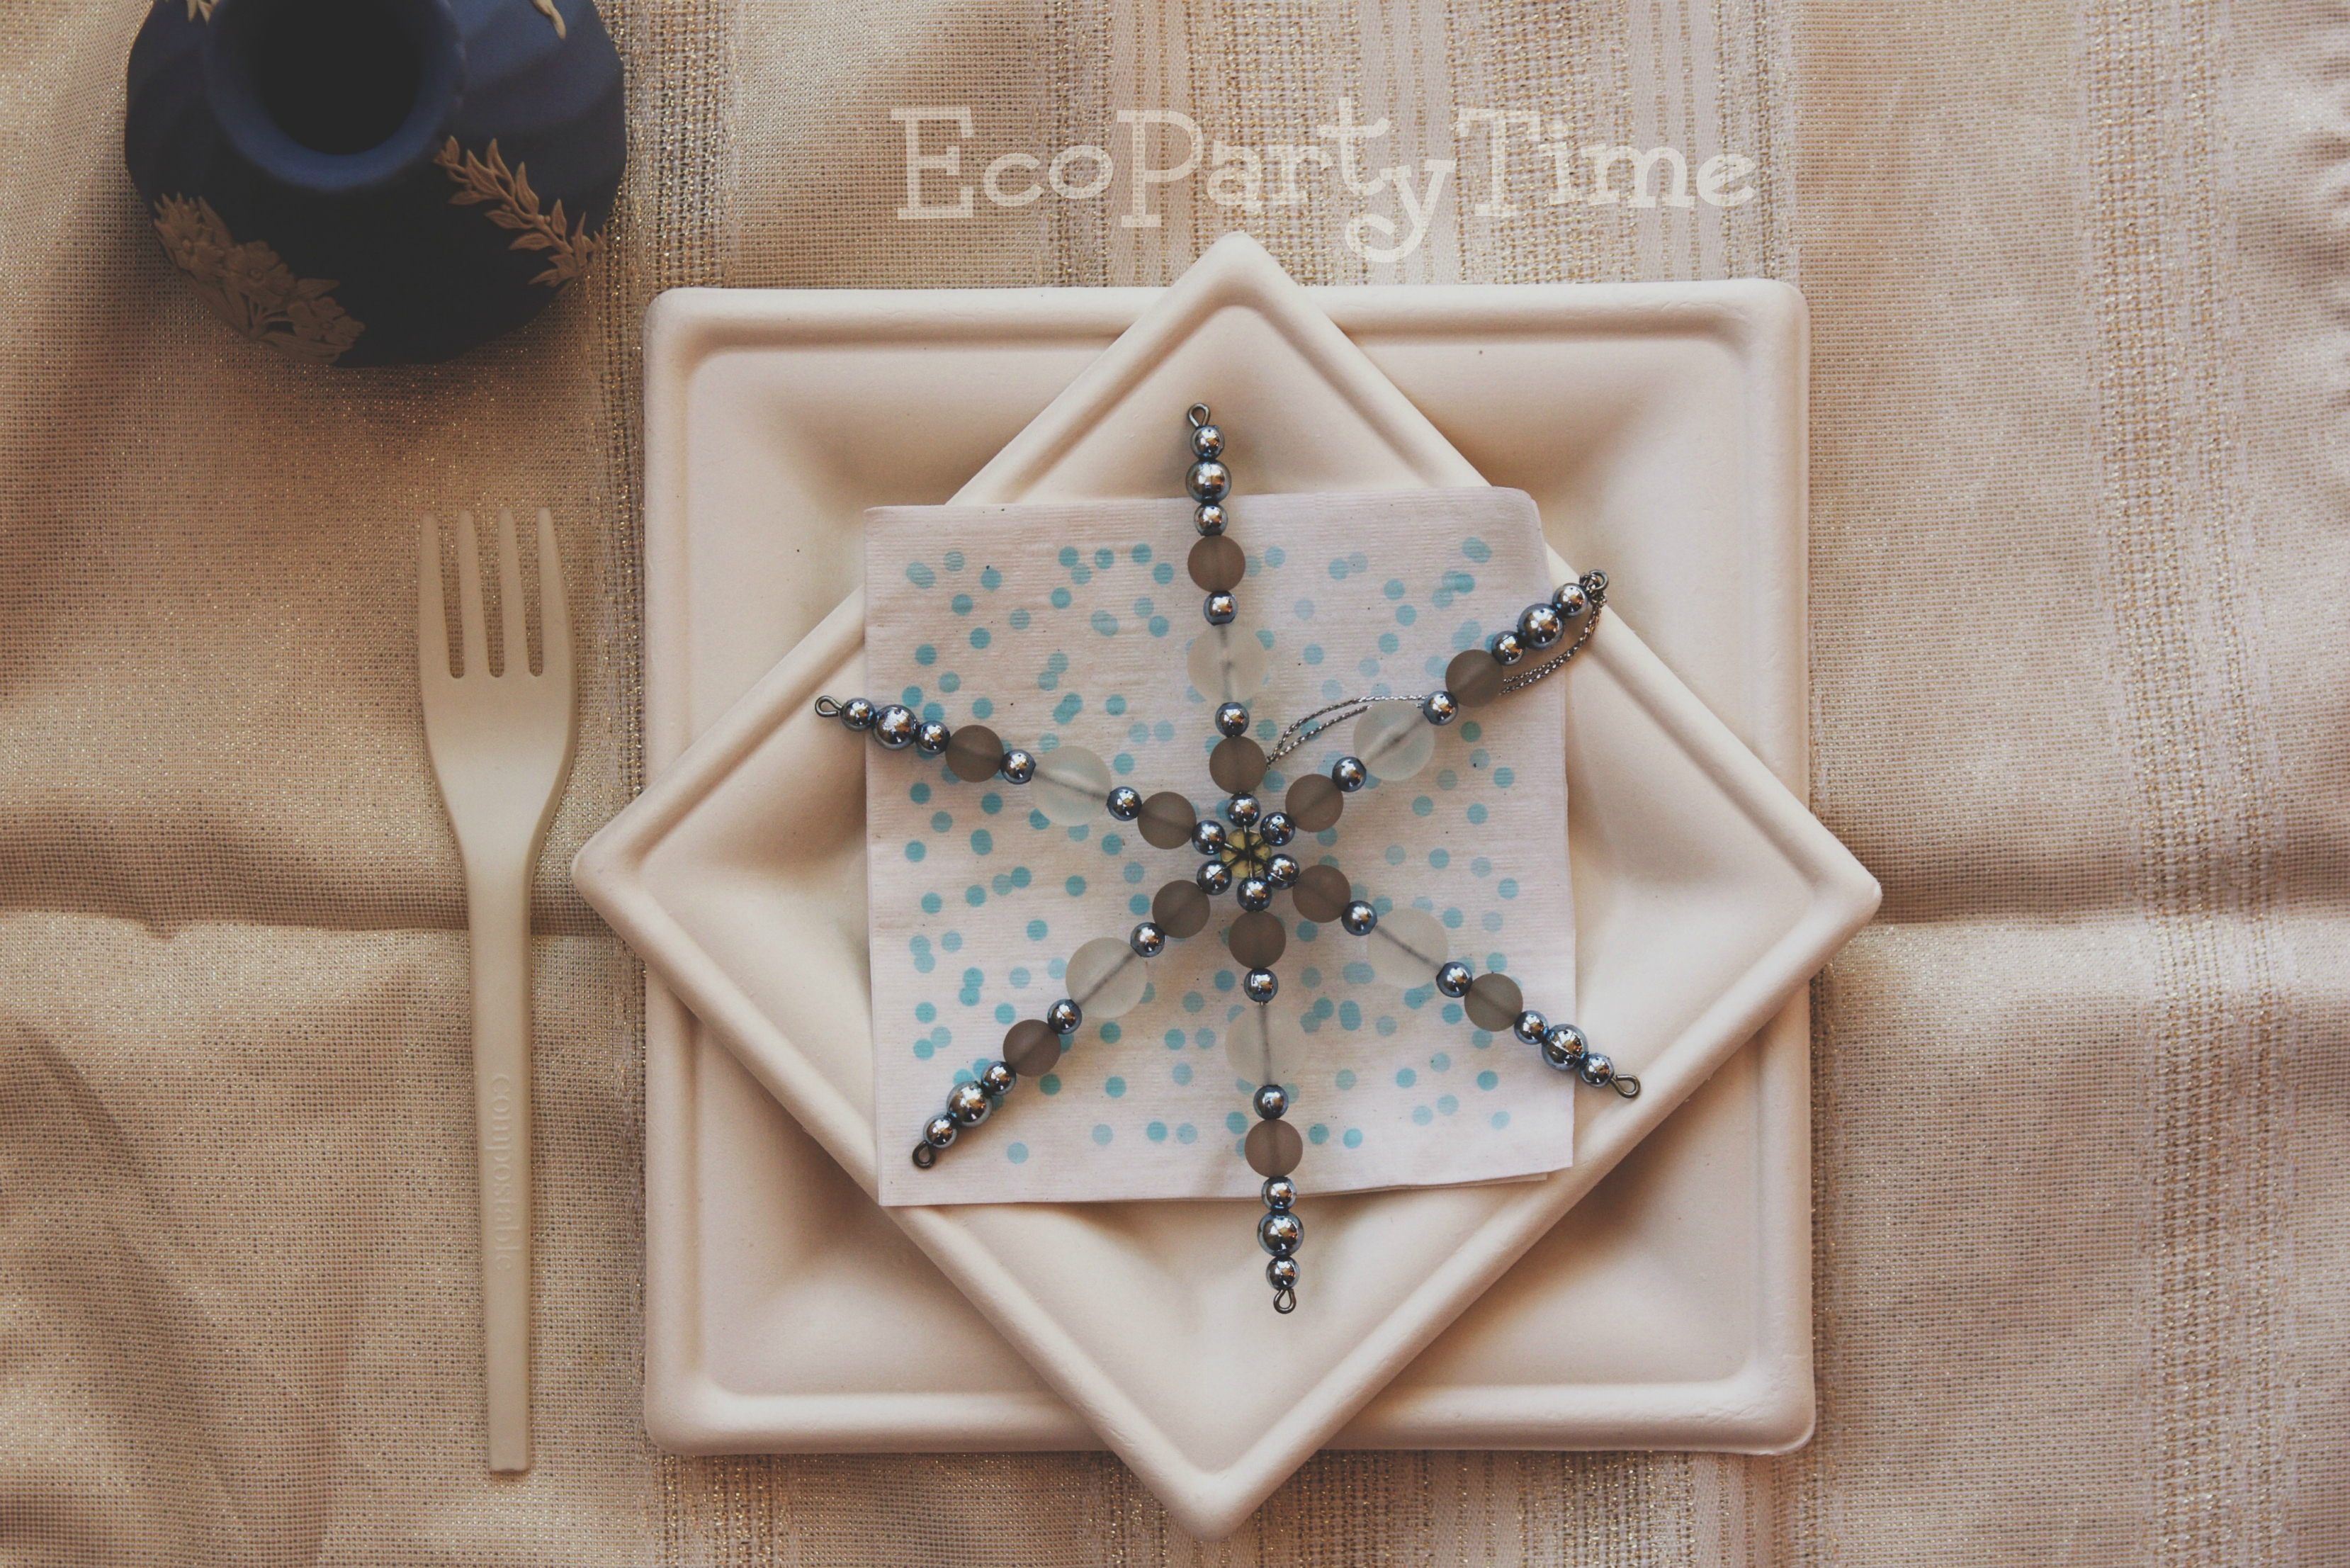 EcoPartyTime: Snowflake Chic Table Setting